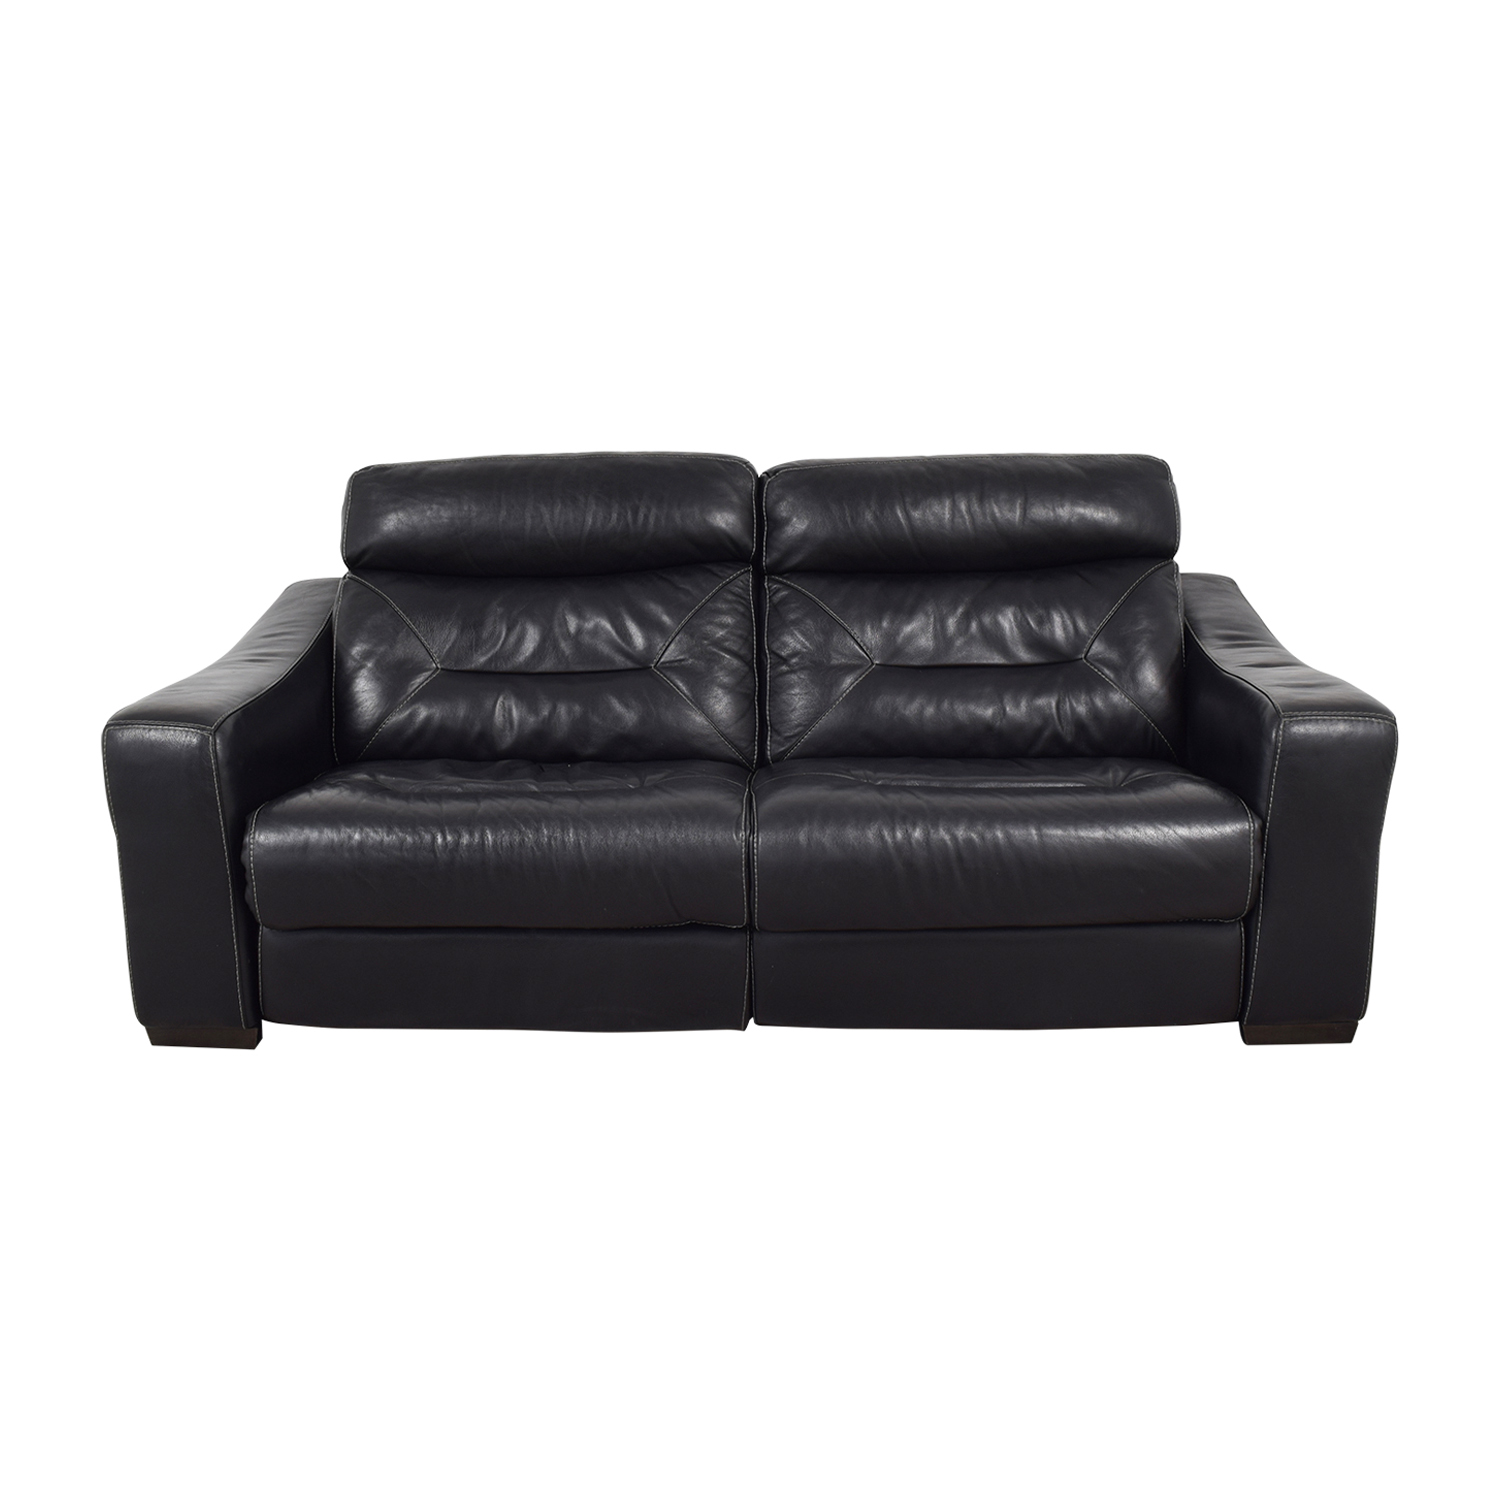 shop Macy's Black Leather Recliner Sofa Macy's Recliners